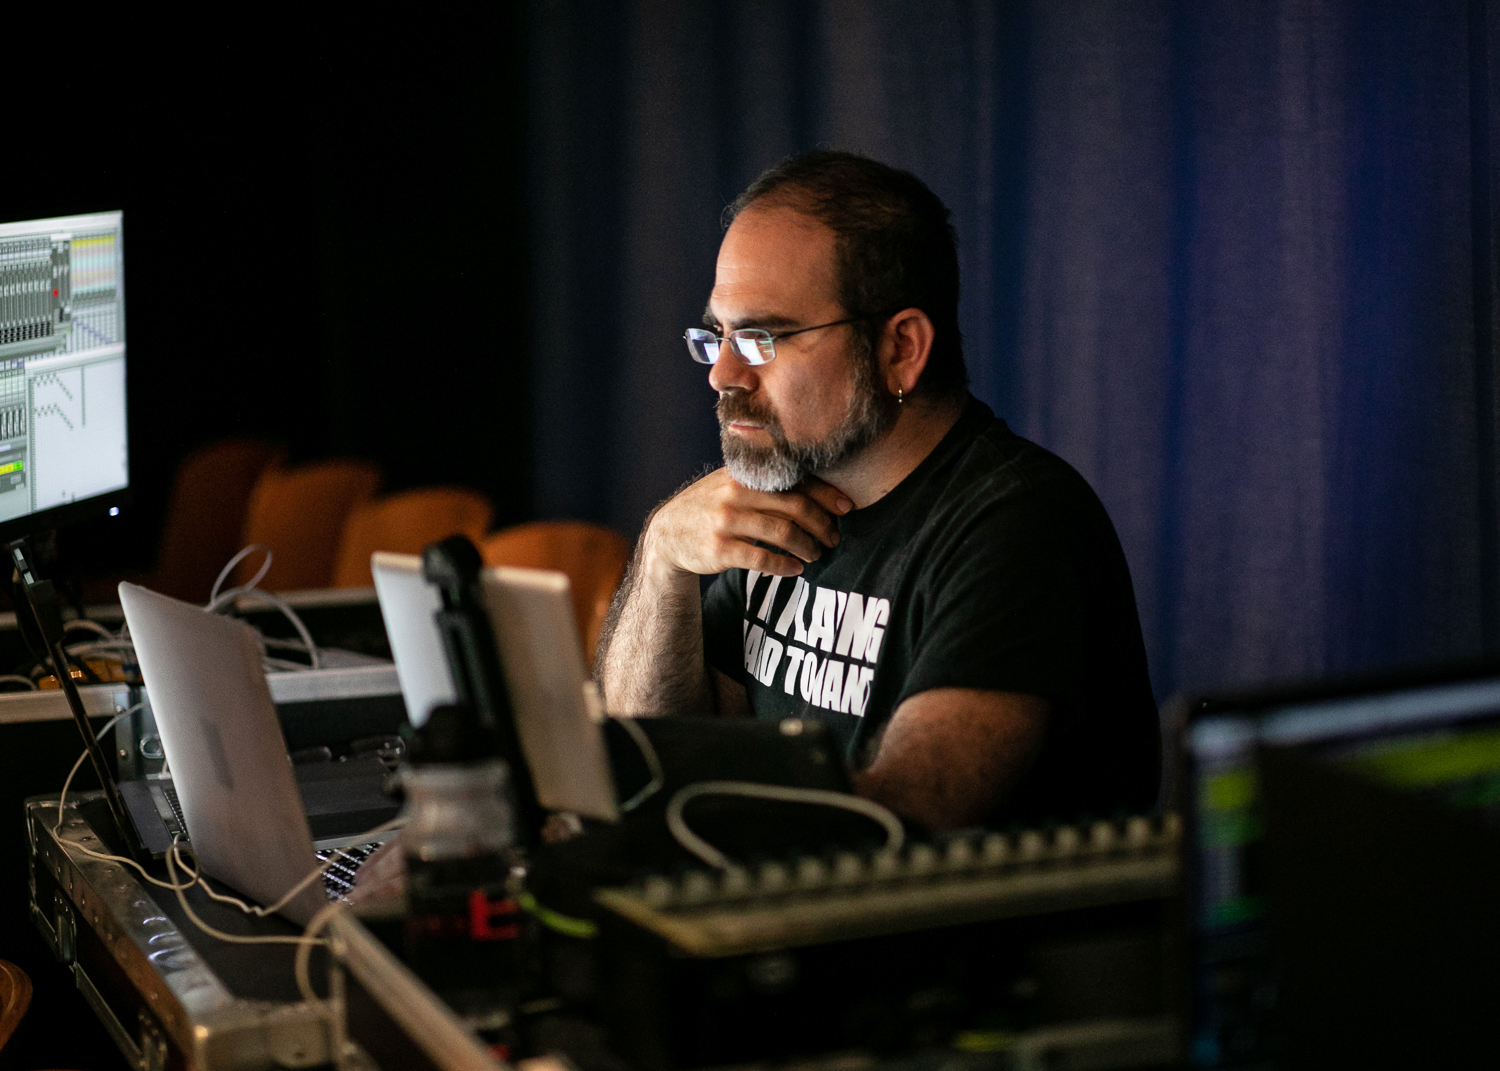 Panning, Playback and Cue programming - Photo by Taso Papadakis